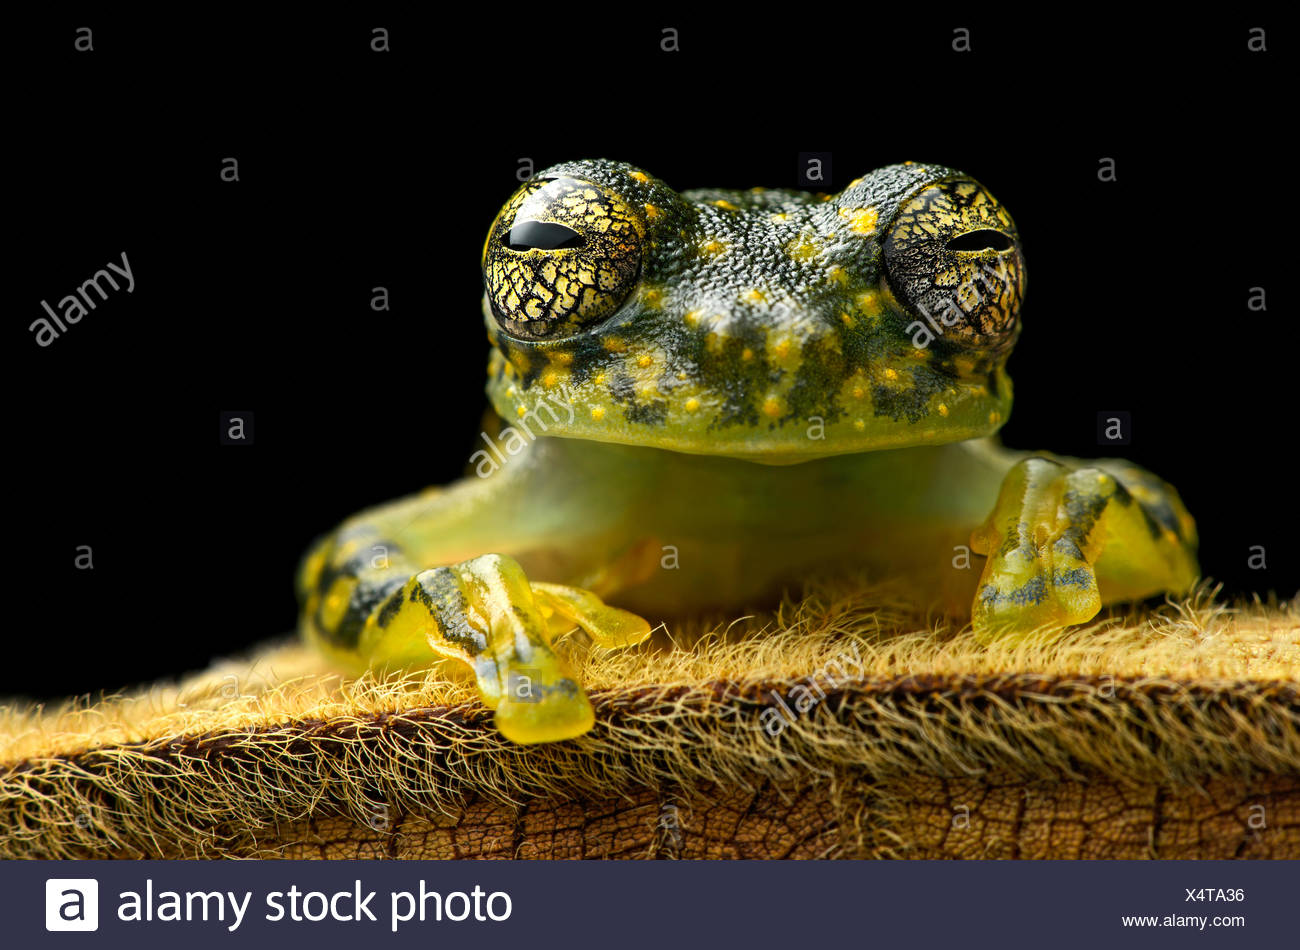 White-Spotted Frog Cochran (Sachatamia albamoculata) assis sur des feuilles velues, Choco rainforest, Canande River Nature Reserve Photo Stock